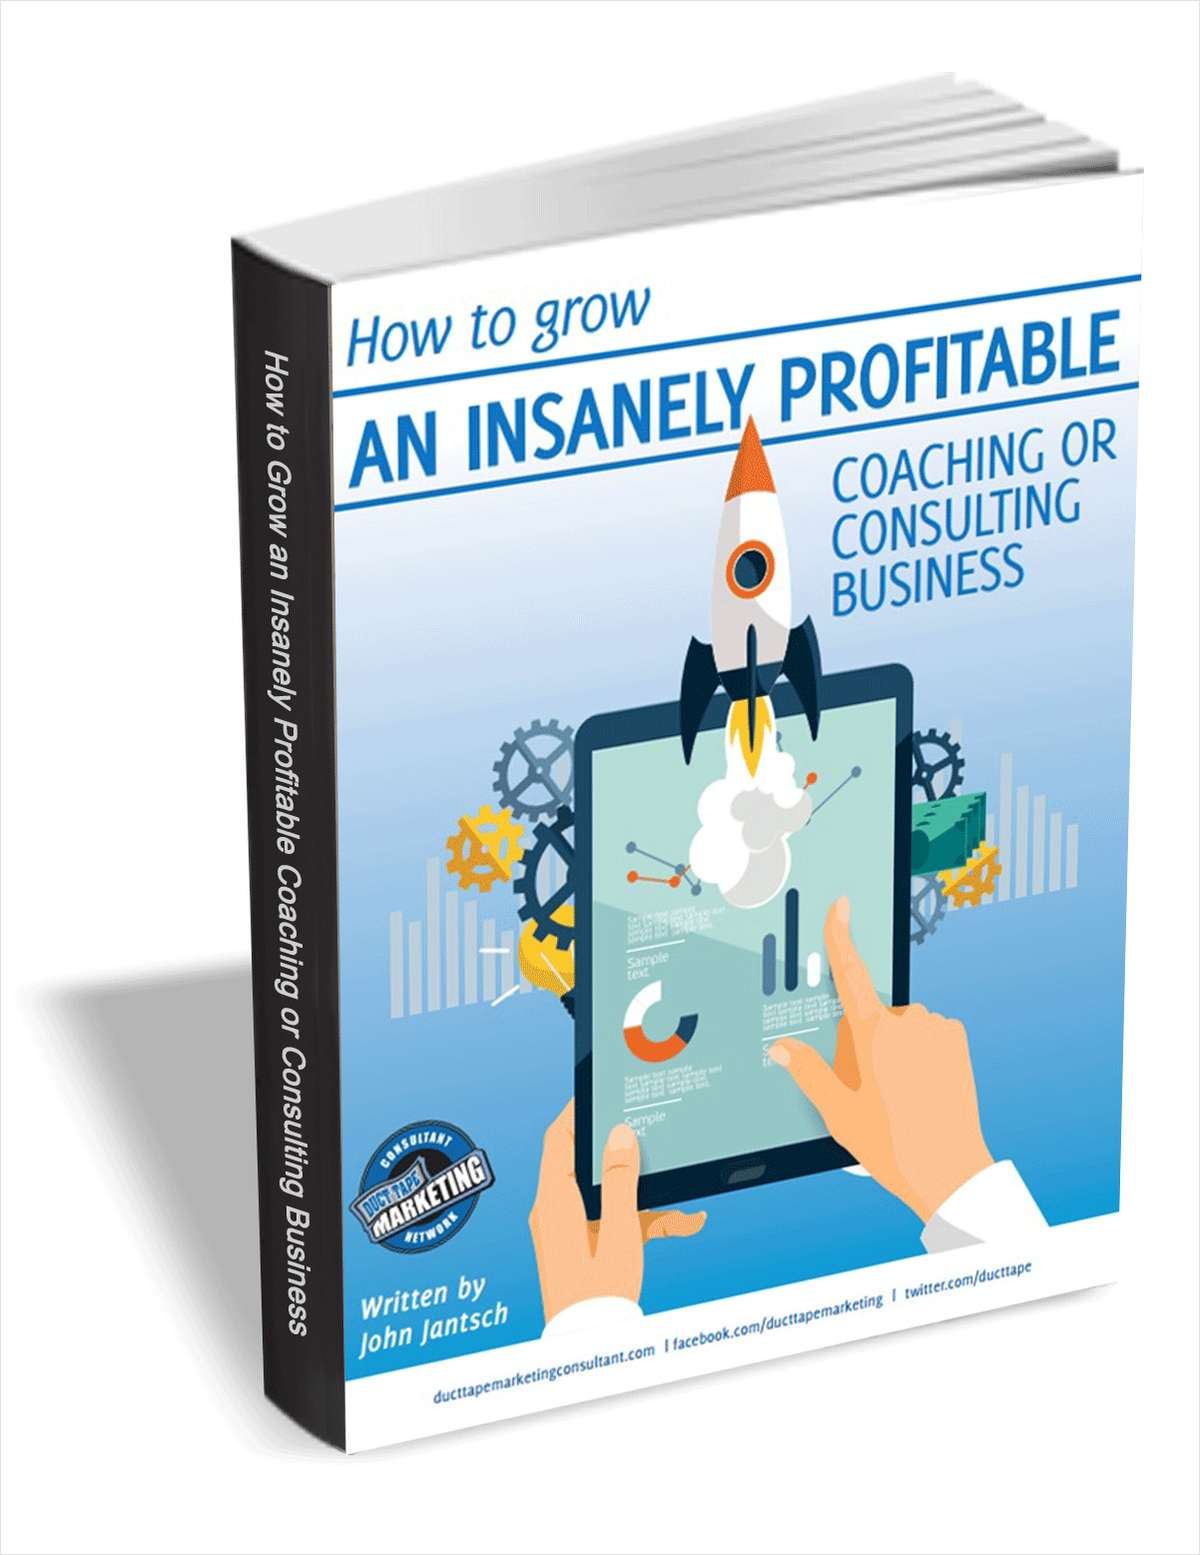 How to Grow an Insanely Profitable Coaching or Consulting Business